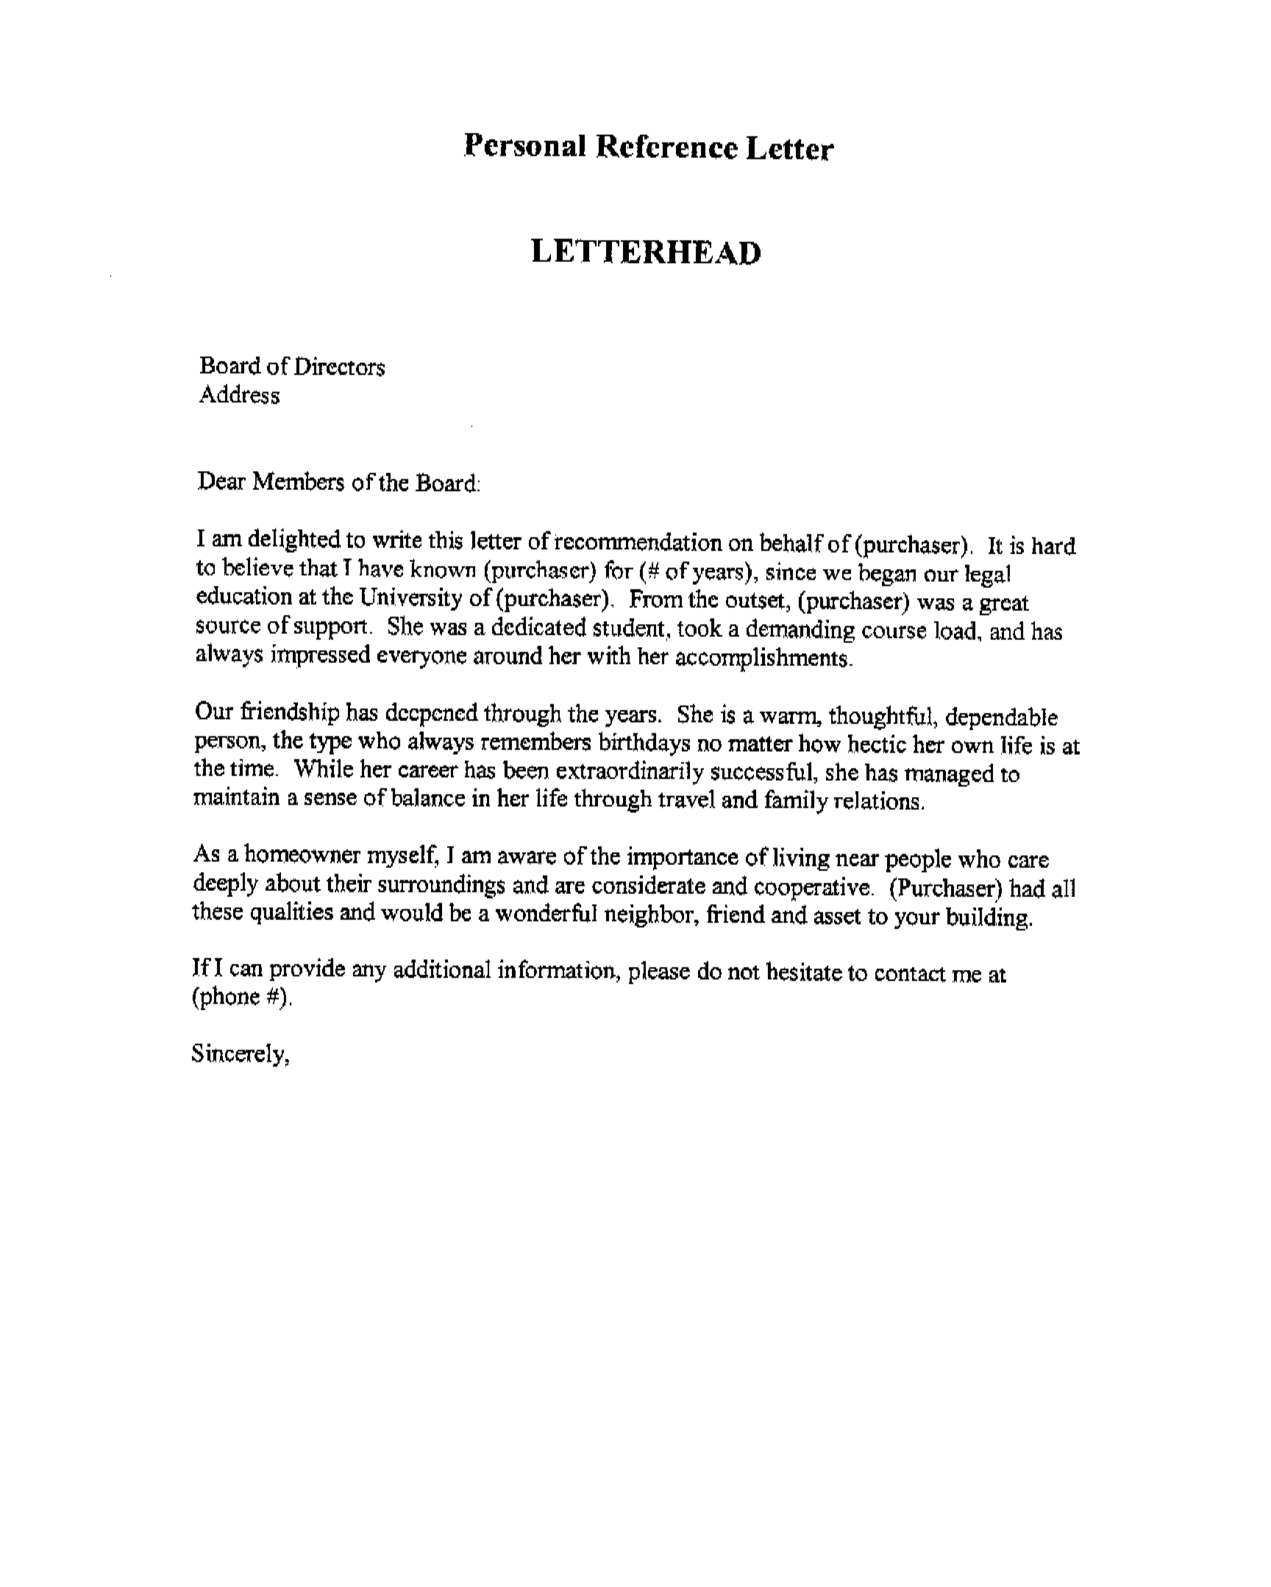 professional reference letter samples Dolap.magnetband.co